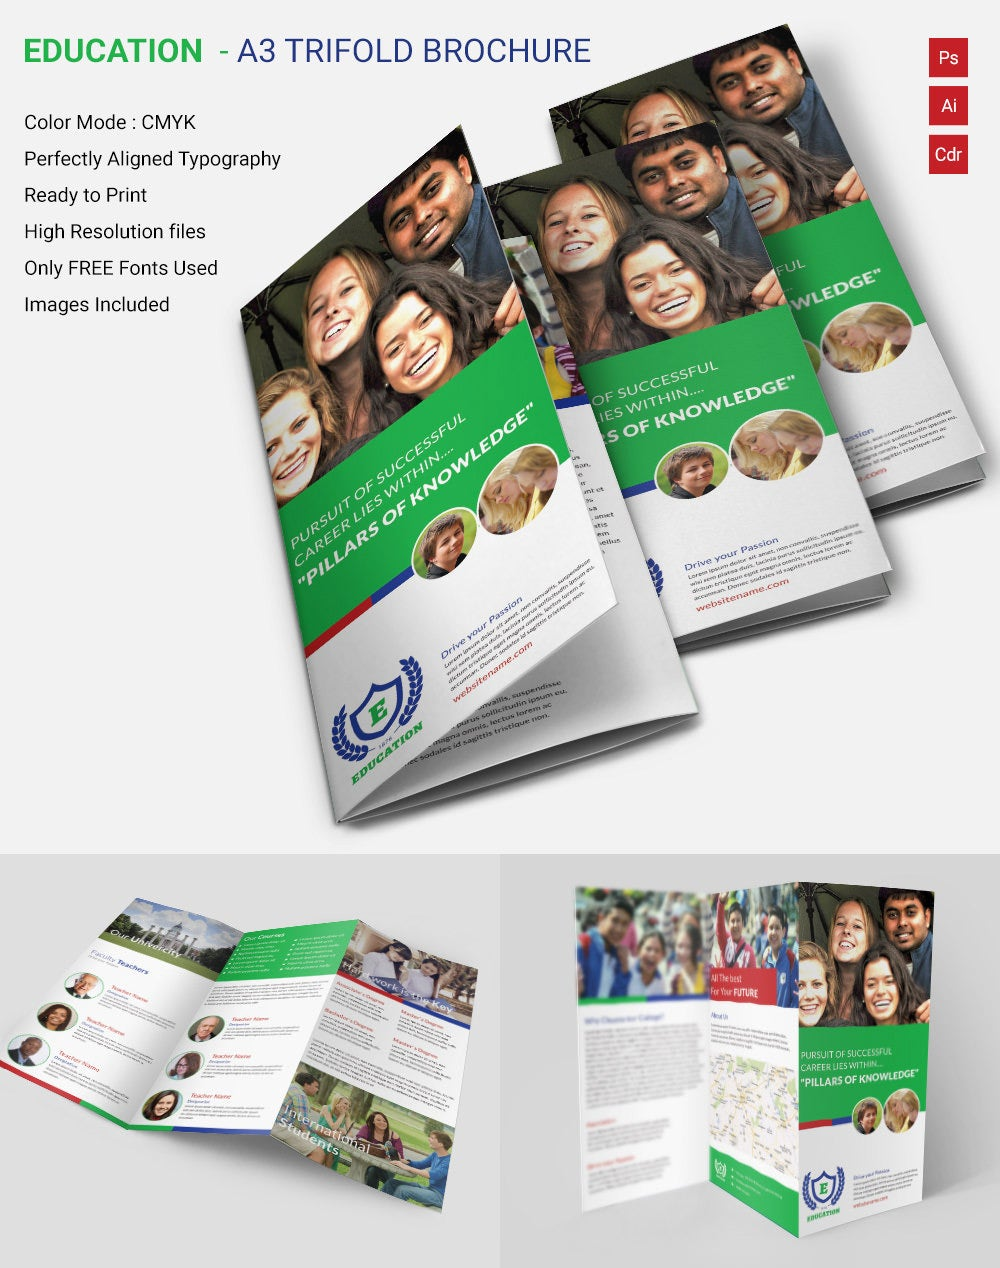 tri fold brochure template 45 word pdf psd eps attractive education a3 tri fold brochure template